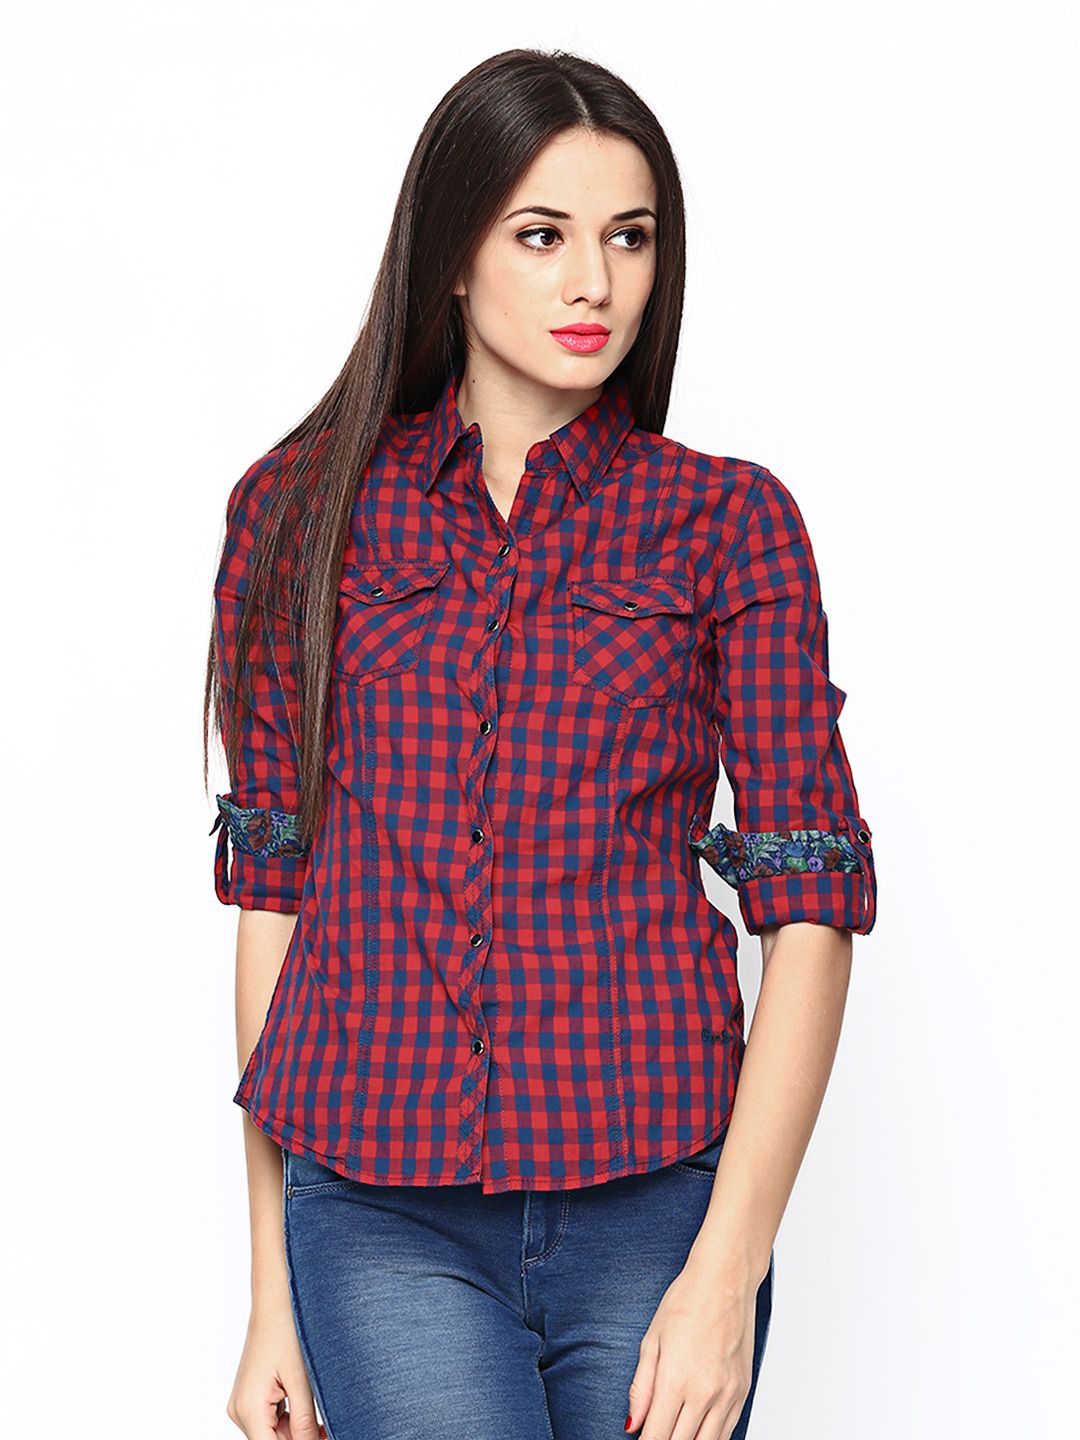 Pepe Jeans Shirts India | Buy Pepe Jeans Shirts Online in India ...